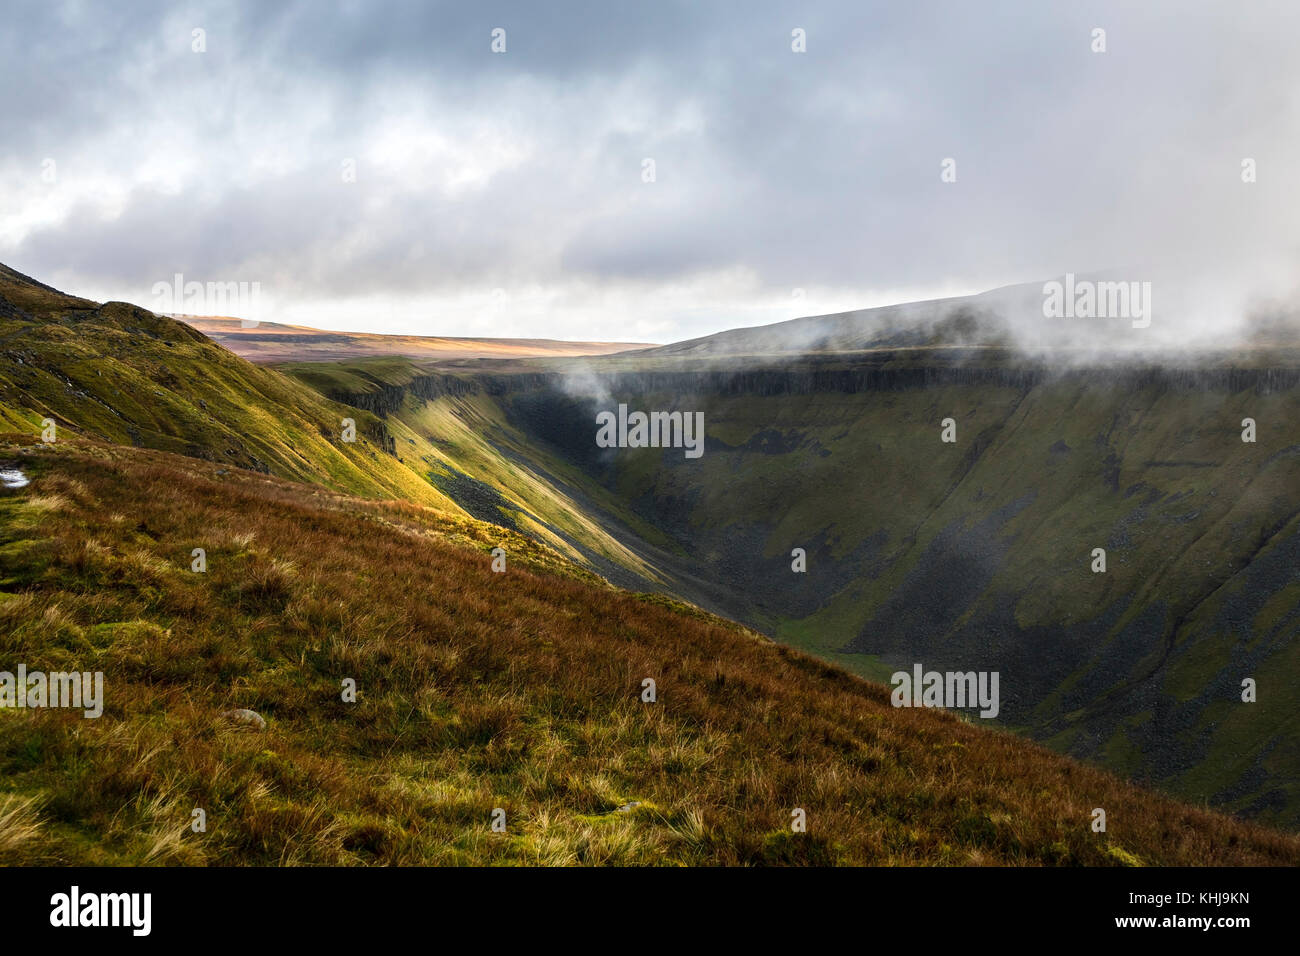 Swirling Clouds and High Cup Nick from the Pennine Way Footpath, Cumbria, UK - Stock Image